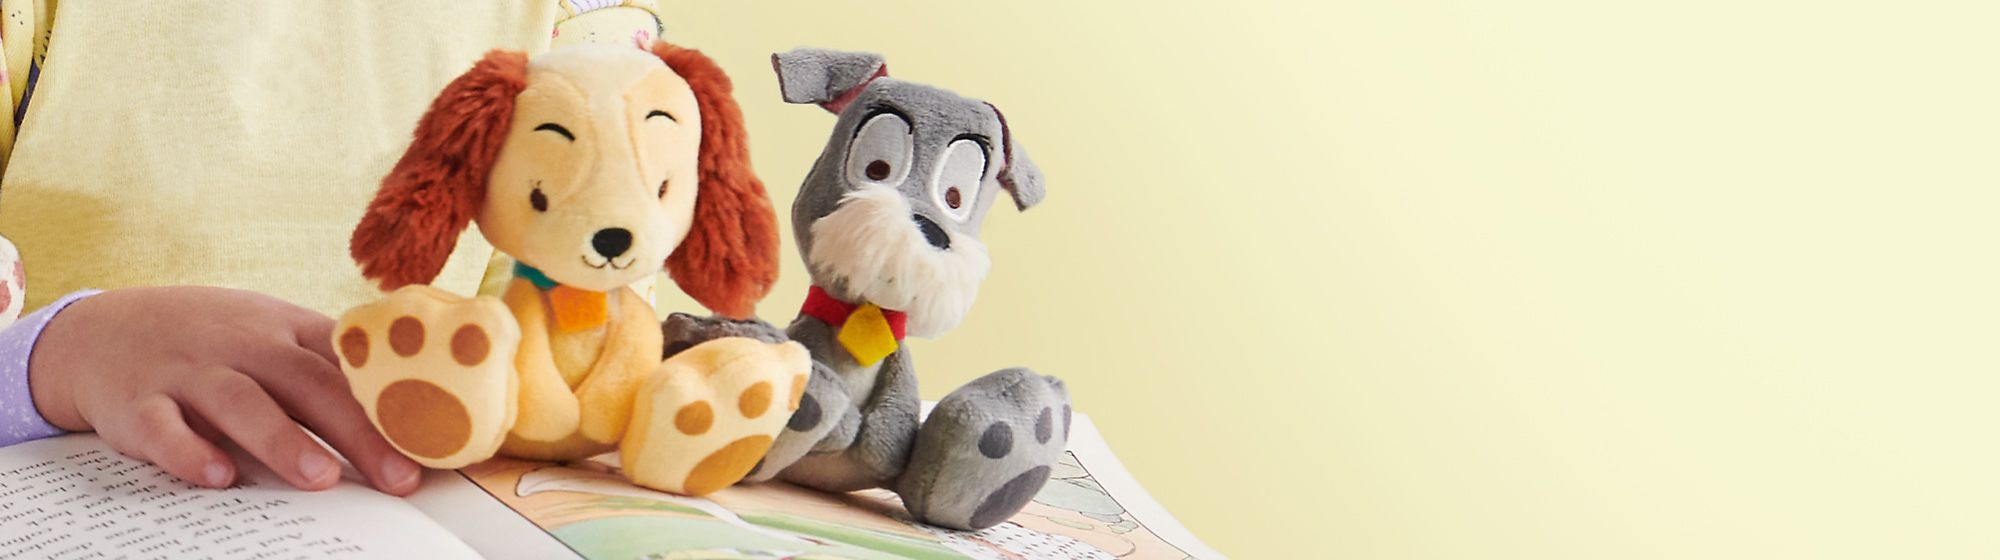 Tiny Big Feet Soft Toys Lady and the Tramp